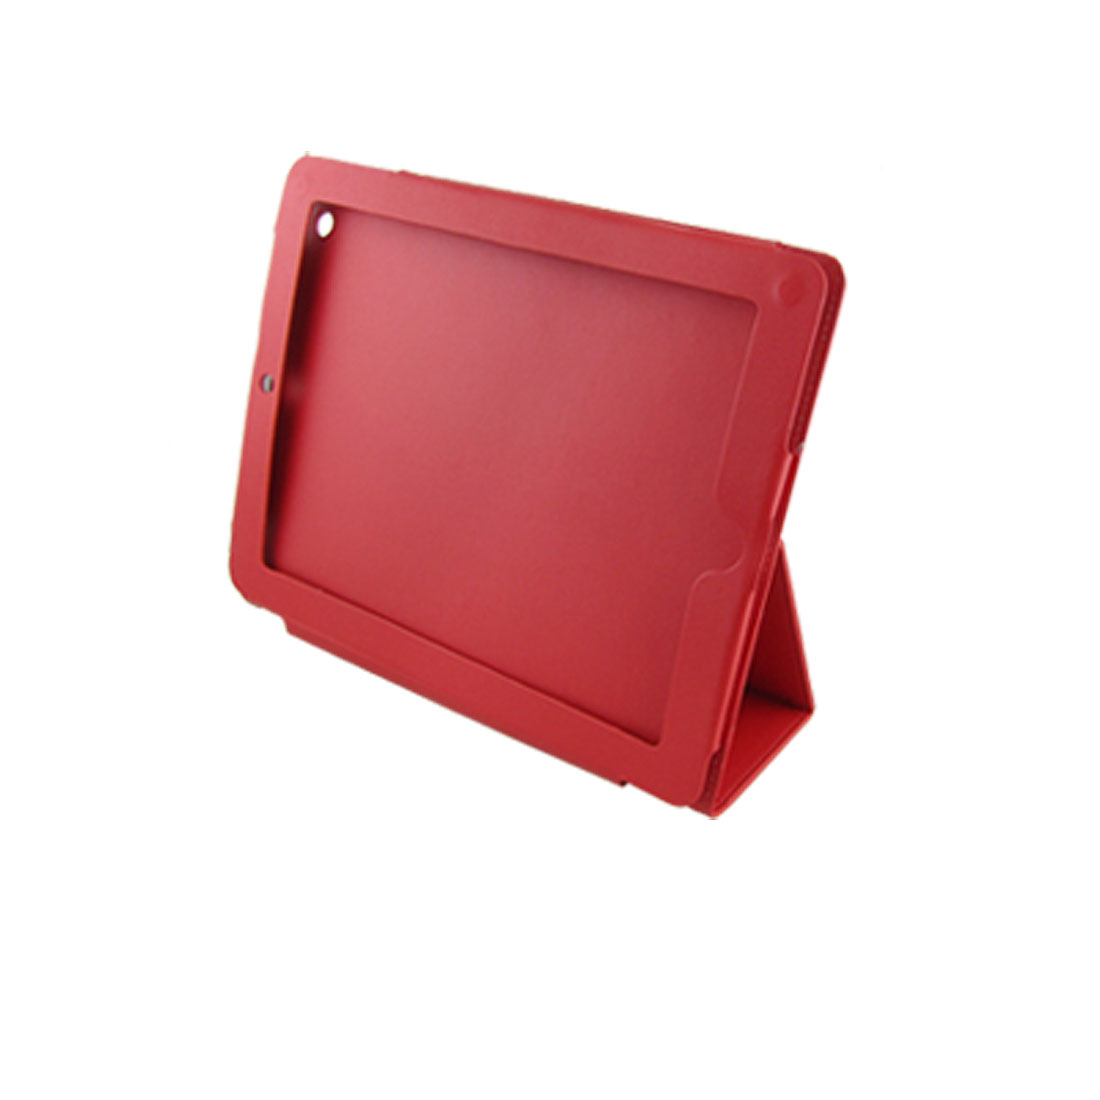 Magnetic Closure Red Faux Leather Pouch Case for Apple iPad 2